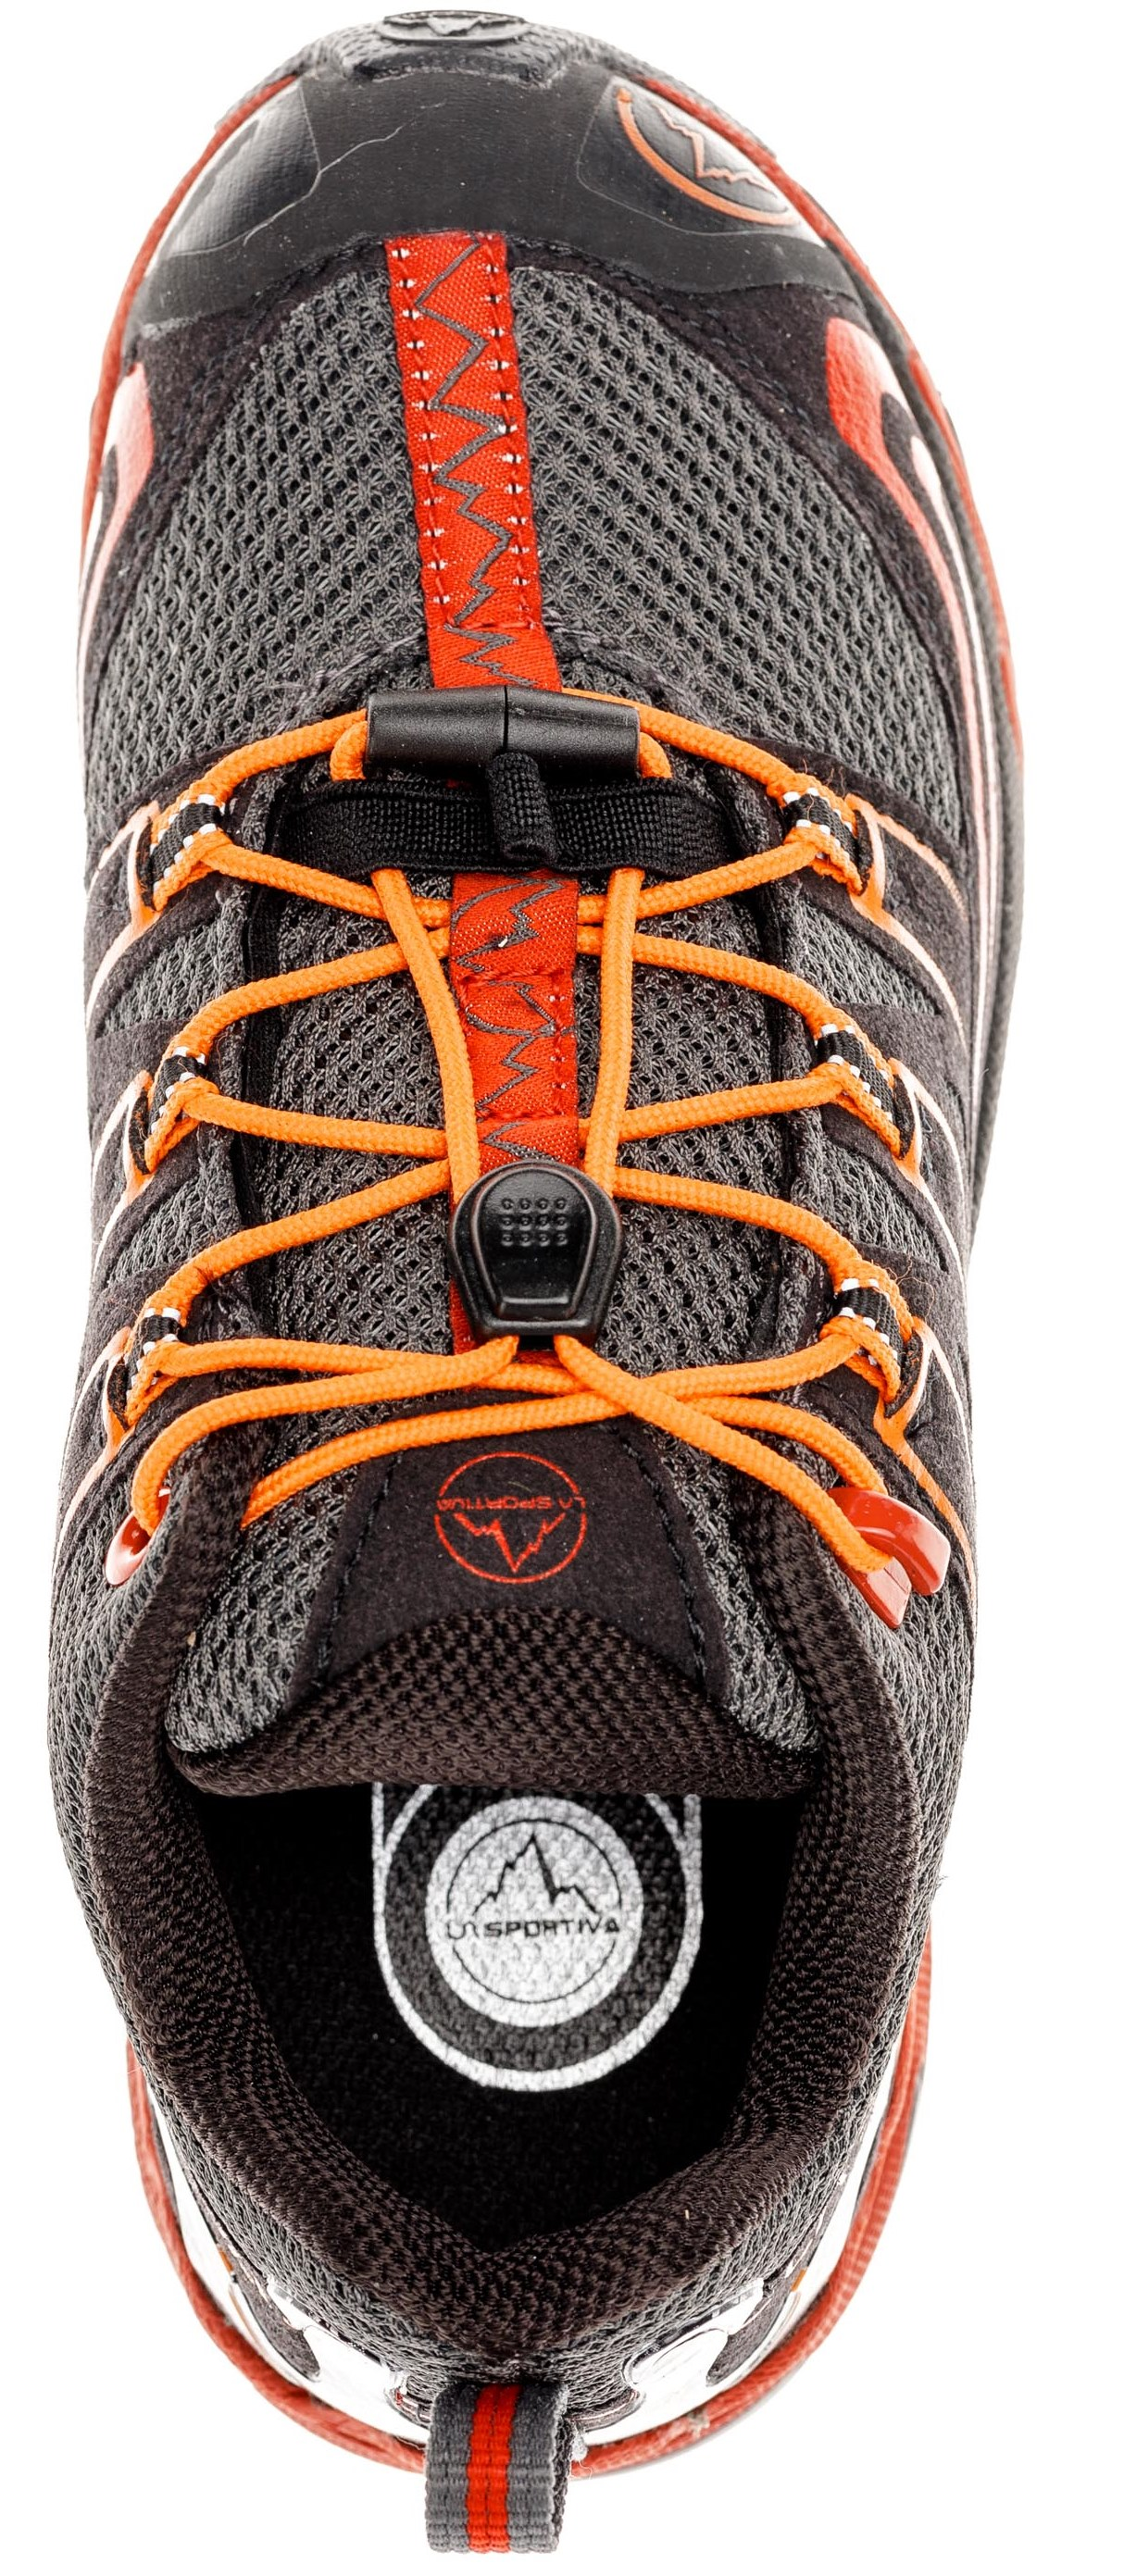 Ботинки детские La Sportiva Falkon Low Carbon/Flame - Фото 4 большая